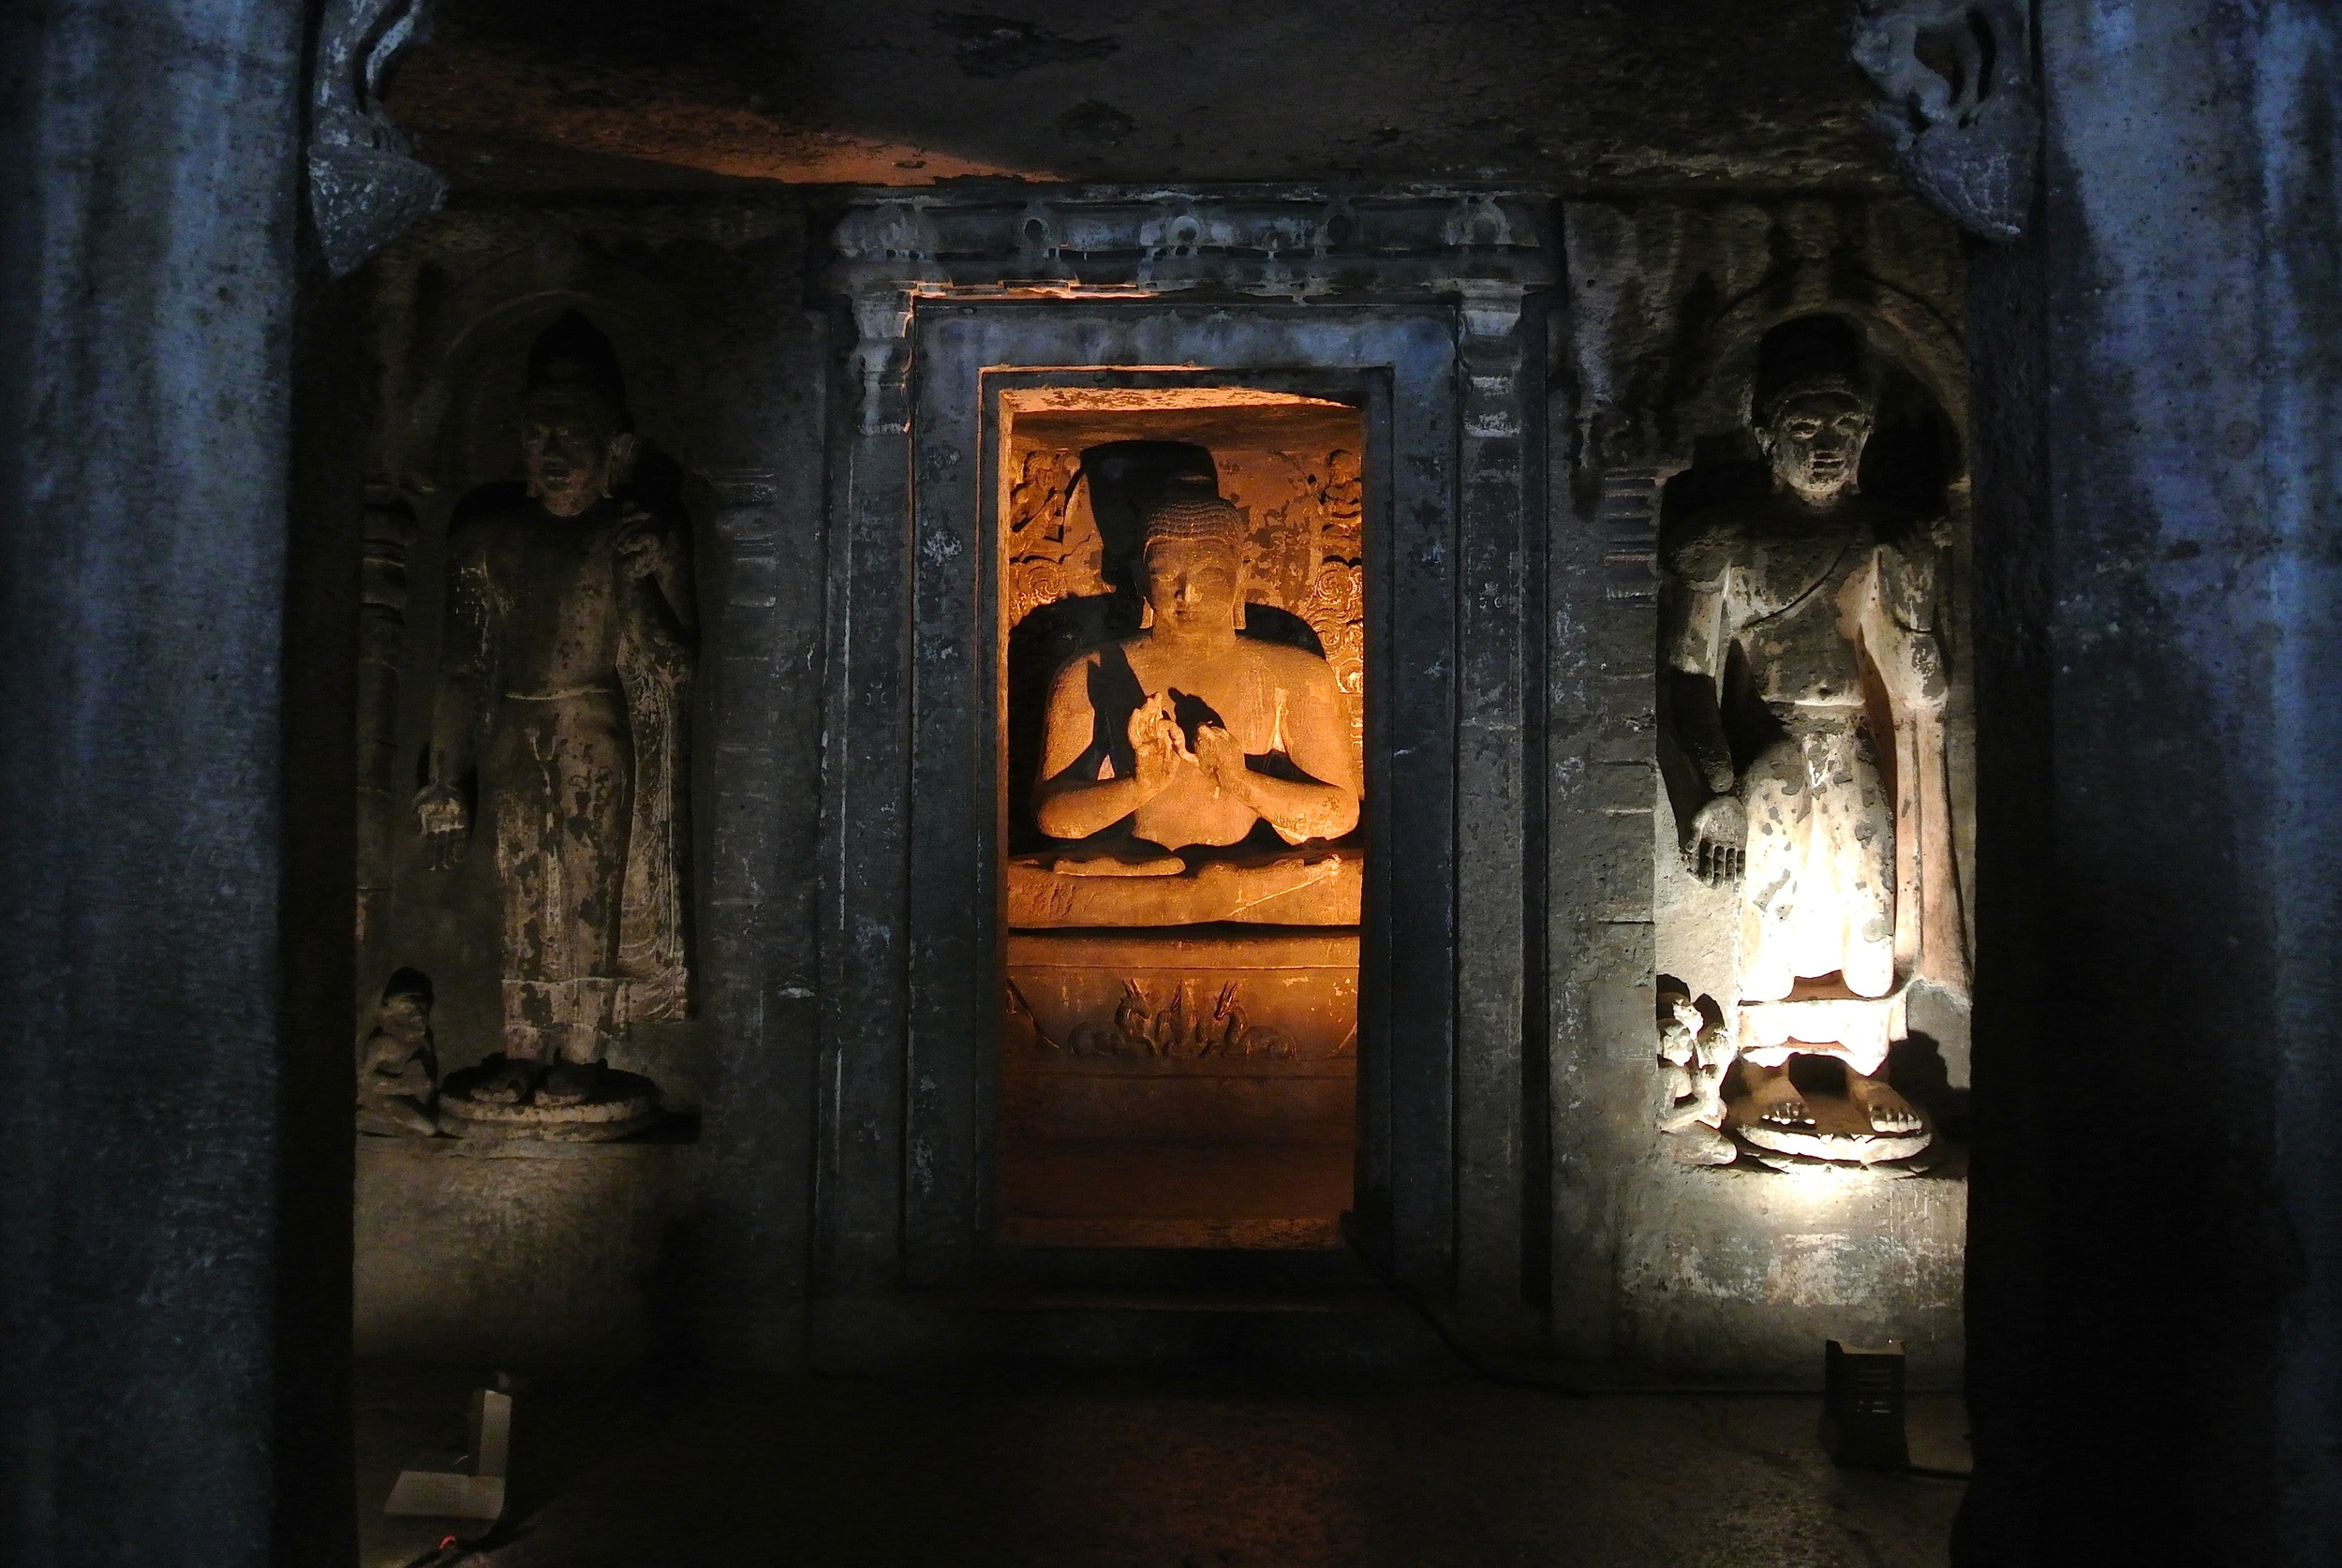 Cave 1: A statue of the Buddha flanked by Avalokitesvara and Vajrapani, the embodiments of compassion and spiritual energy